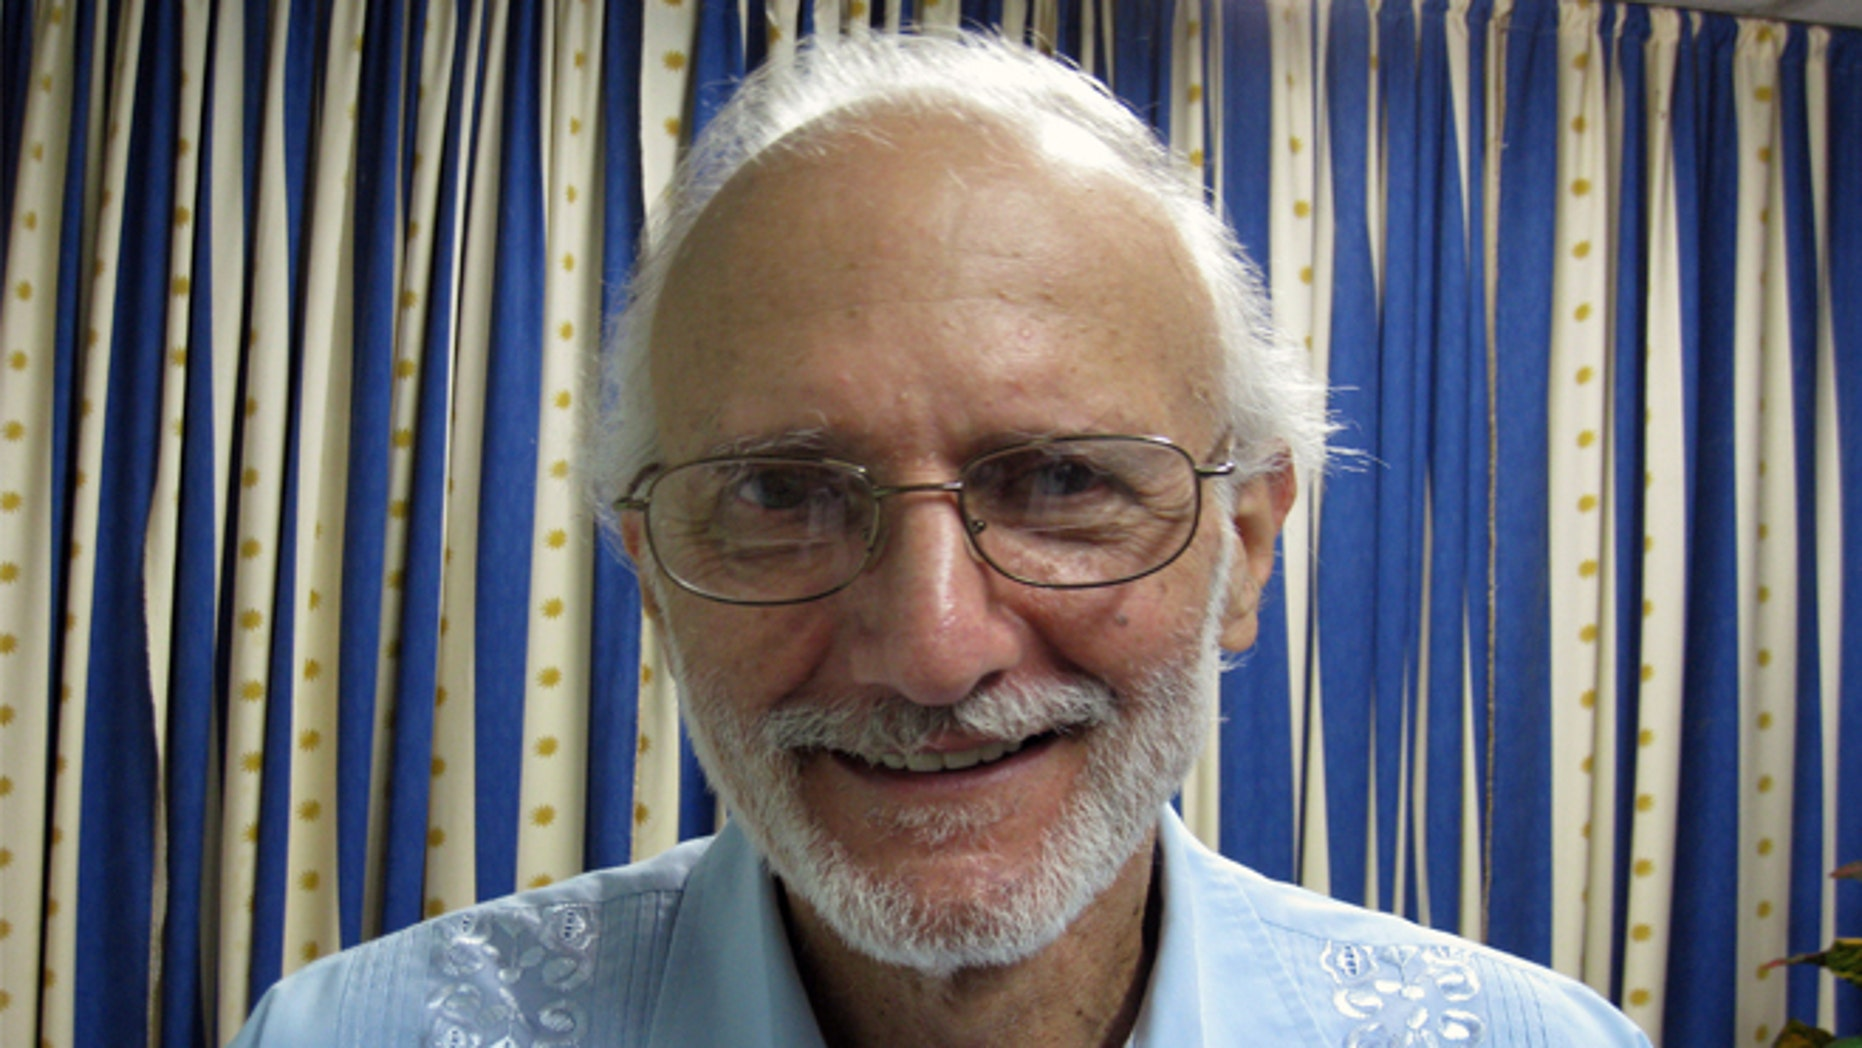 FILE - In this Nov. 27, 2012 file photo provided by James L. Berenthal, shows jailed American Alan Gross poses for a photo during a visit by Rabbi Elie Abadie and U.S. lawyer James L. Berenthal at Finlay military hospital as he serves a prison sentence in Havana, Cuba. The mother of an American man who was imprisoned in Cuba while working to set up Internet access there has died. The family of 92-year-old Evelyn Gross said Wednesday that she died in Plano, Texas. She had suffered from lung cancer. Gross' son Alan Gross was arrested in Cuba in 2009. The Maryland man had been working covertly in Cuba as a subcontractor for the U.S. government's U.S. Agency for International Development.  (AP Photo/James L. Berenthal, File)